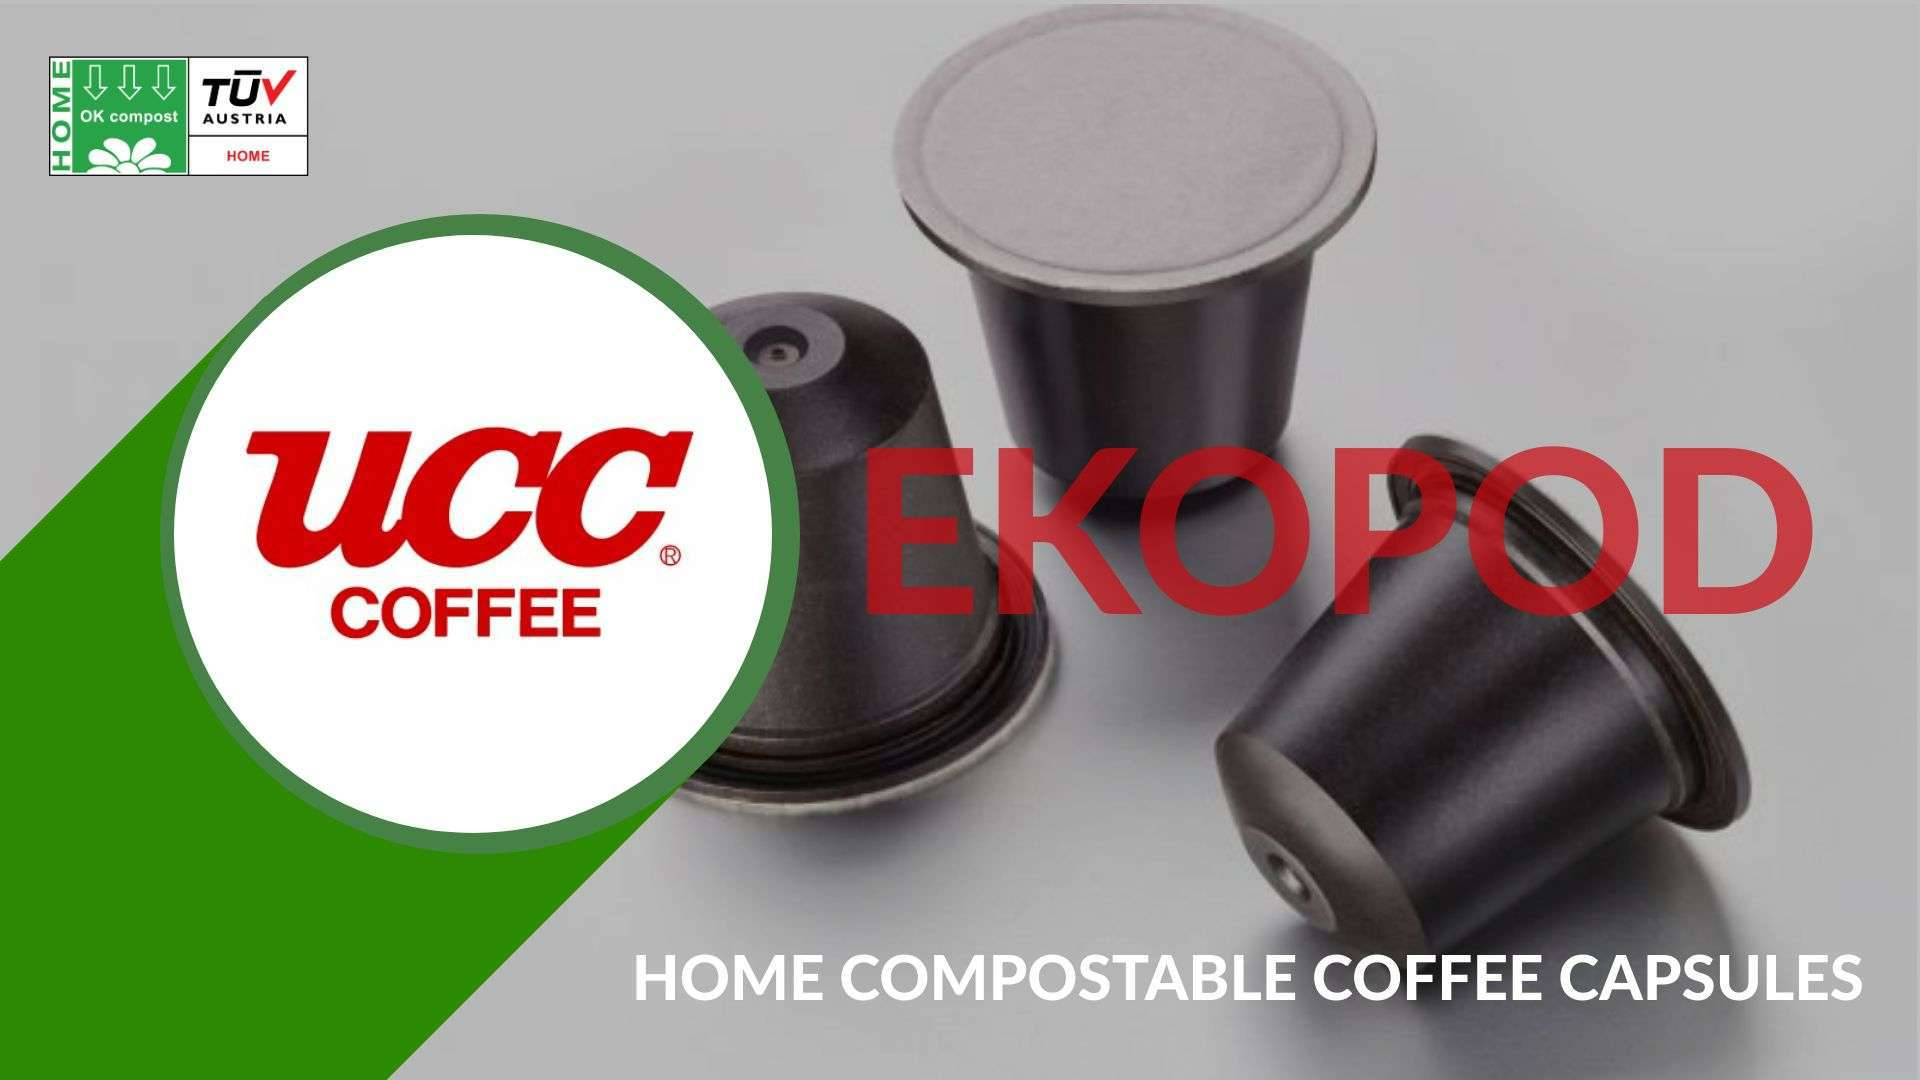 UCC LAUNCHES EKOPOD HOME COMPOSTABLE COFFEE CAPSULES